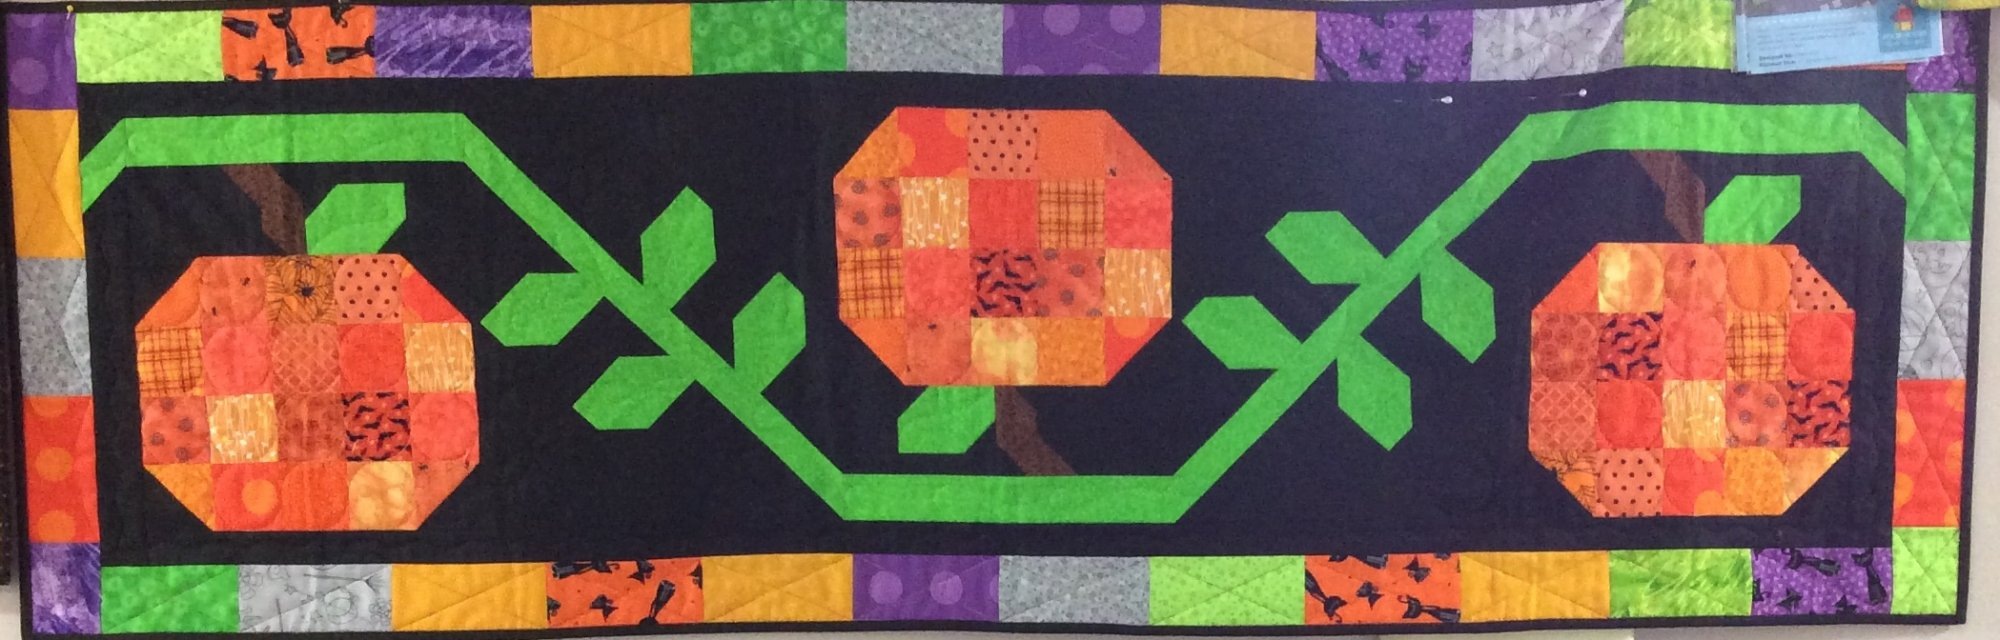 Pumpkin Patch Table Runner from Trendy Table 2